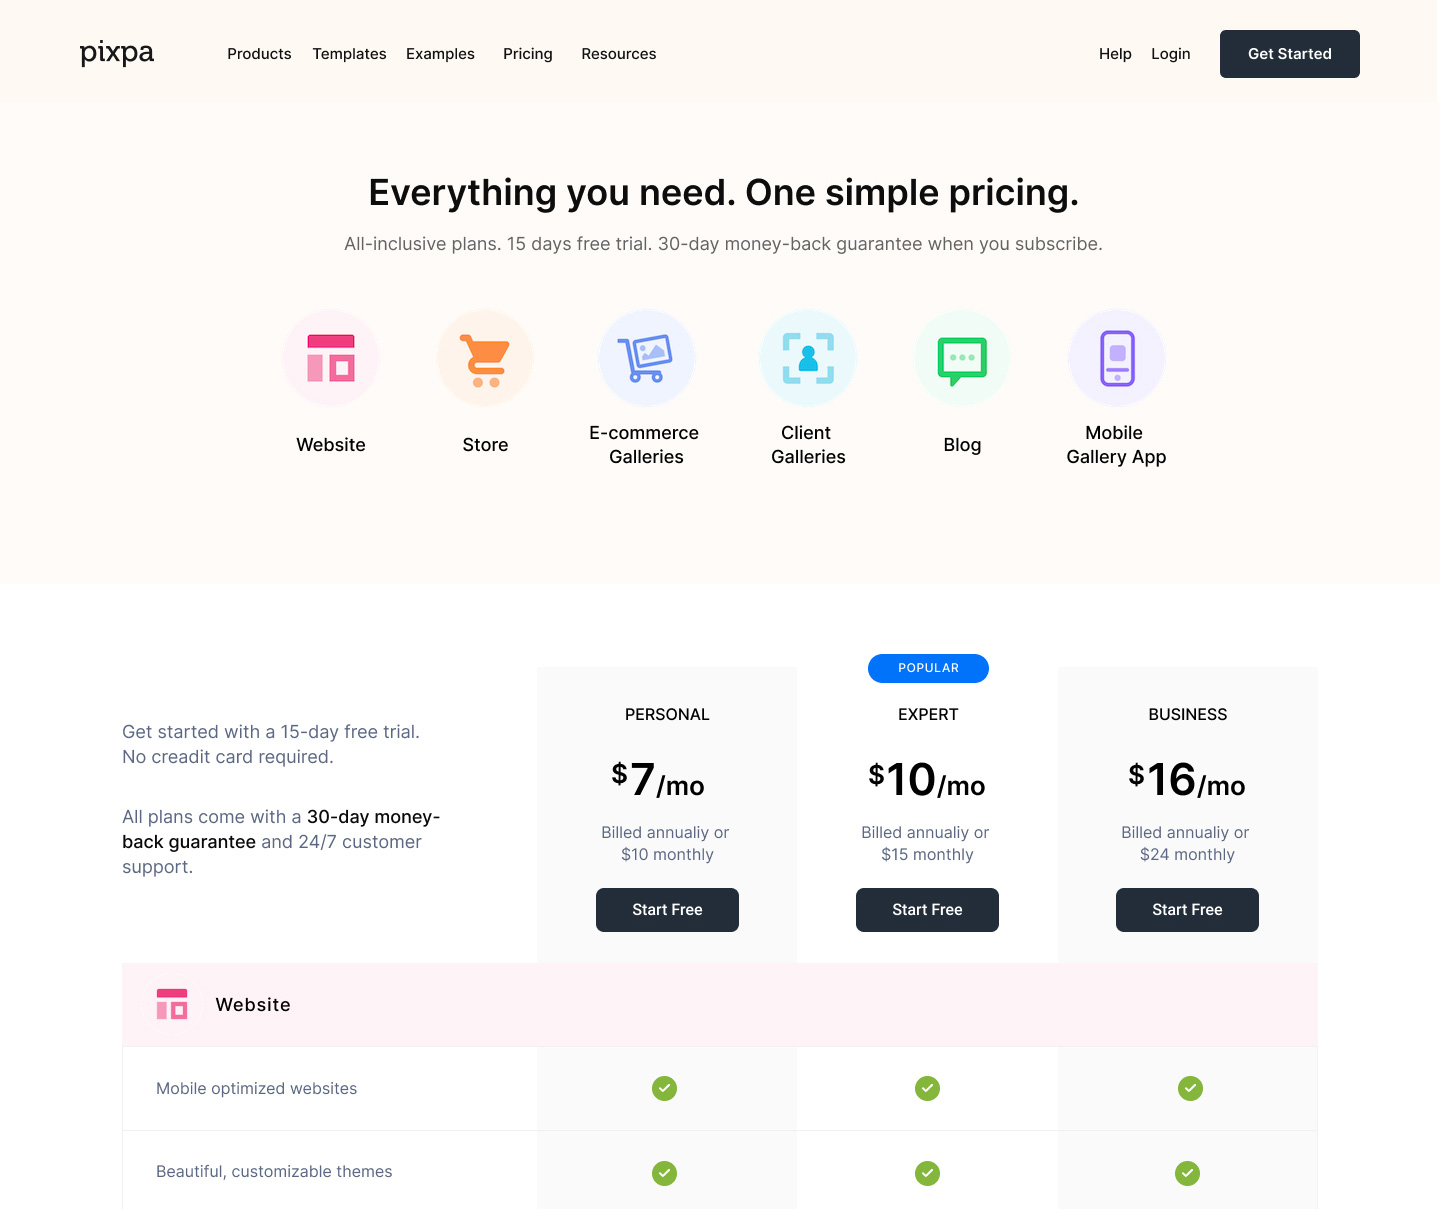 Pixpa - Affordable and simple pricing plans